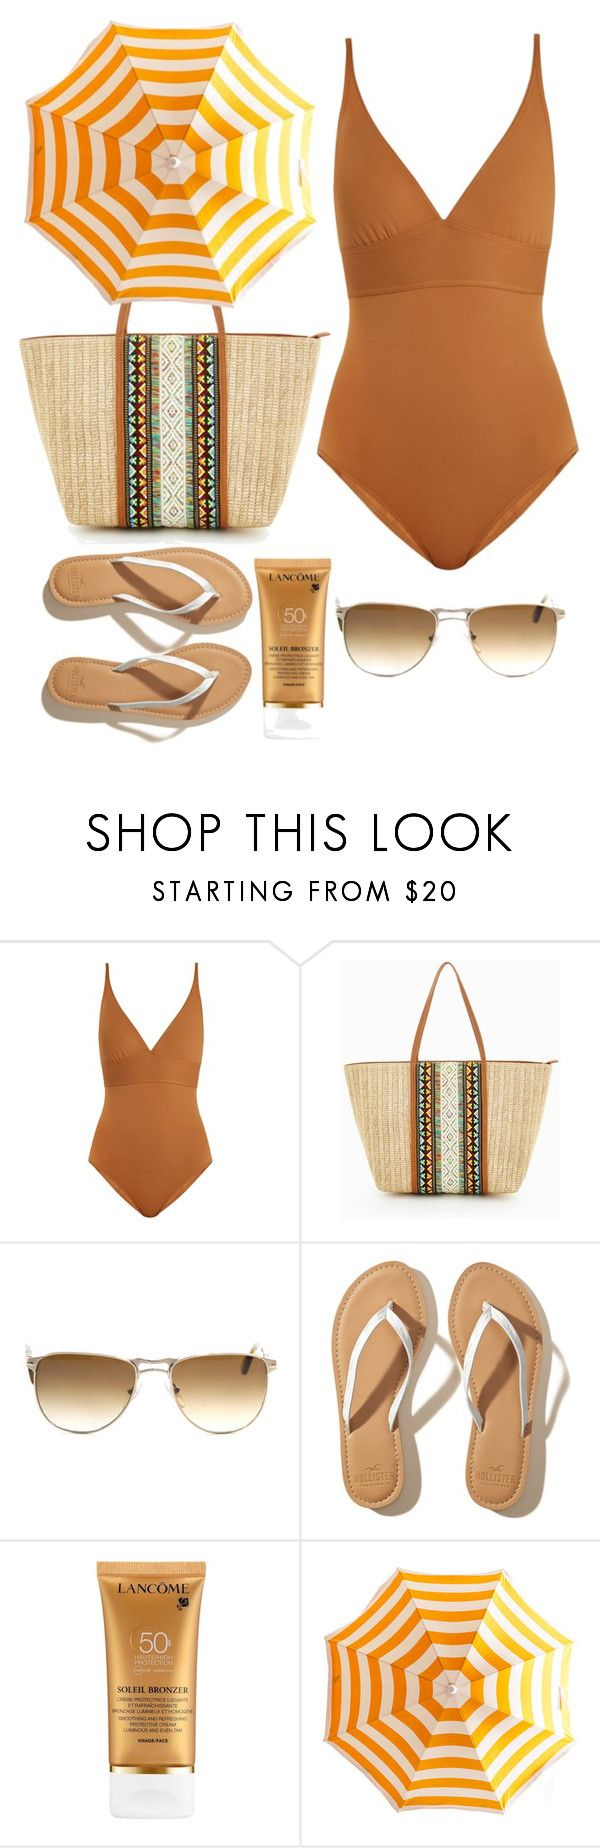 """""""Lady of the beach."""" by elizabethpd ❤ liked on Polyvore featuring Eres, ALDO, Persol, Hollister Co. and Lancôme"""